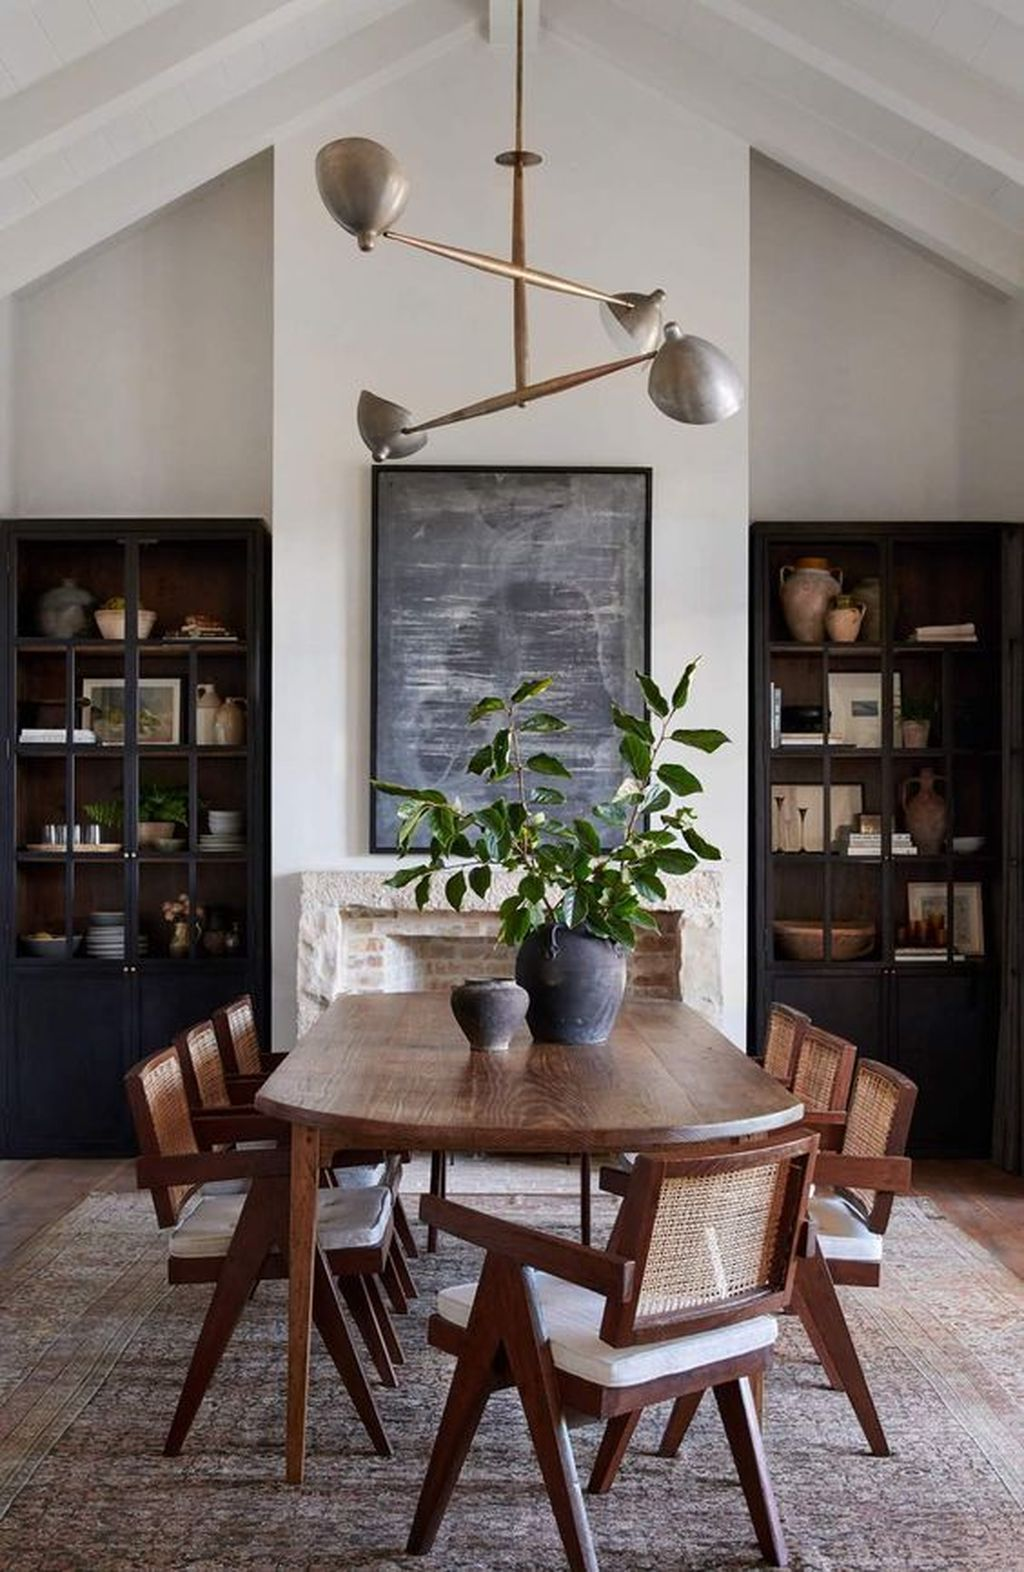 Admirable Dining Room Design Ideas You Will Love 13